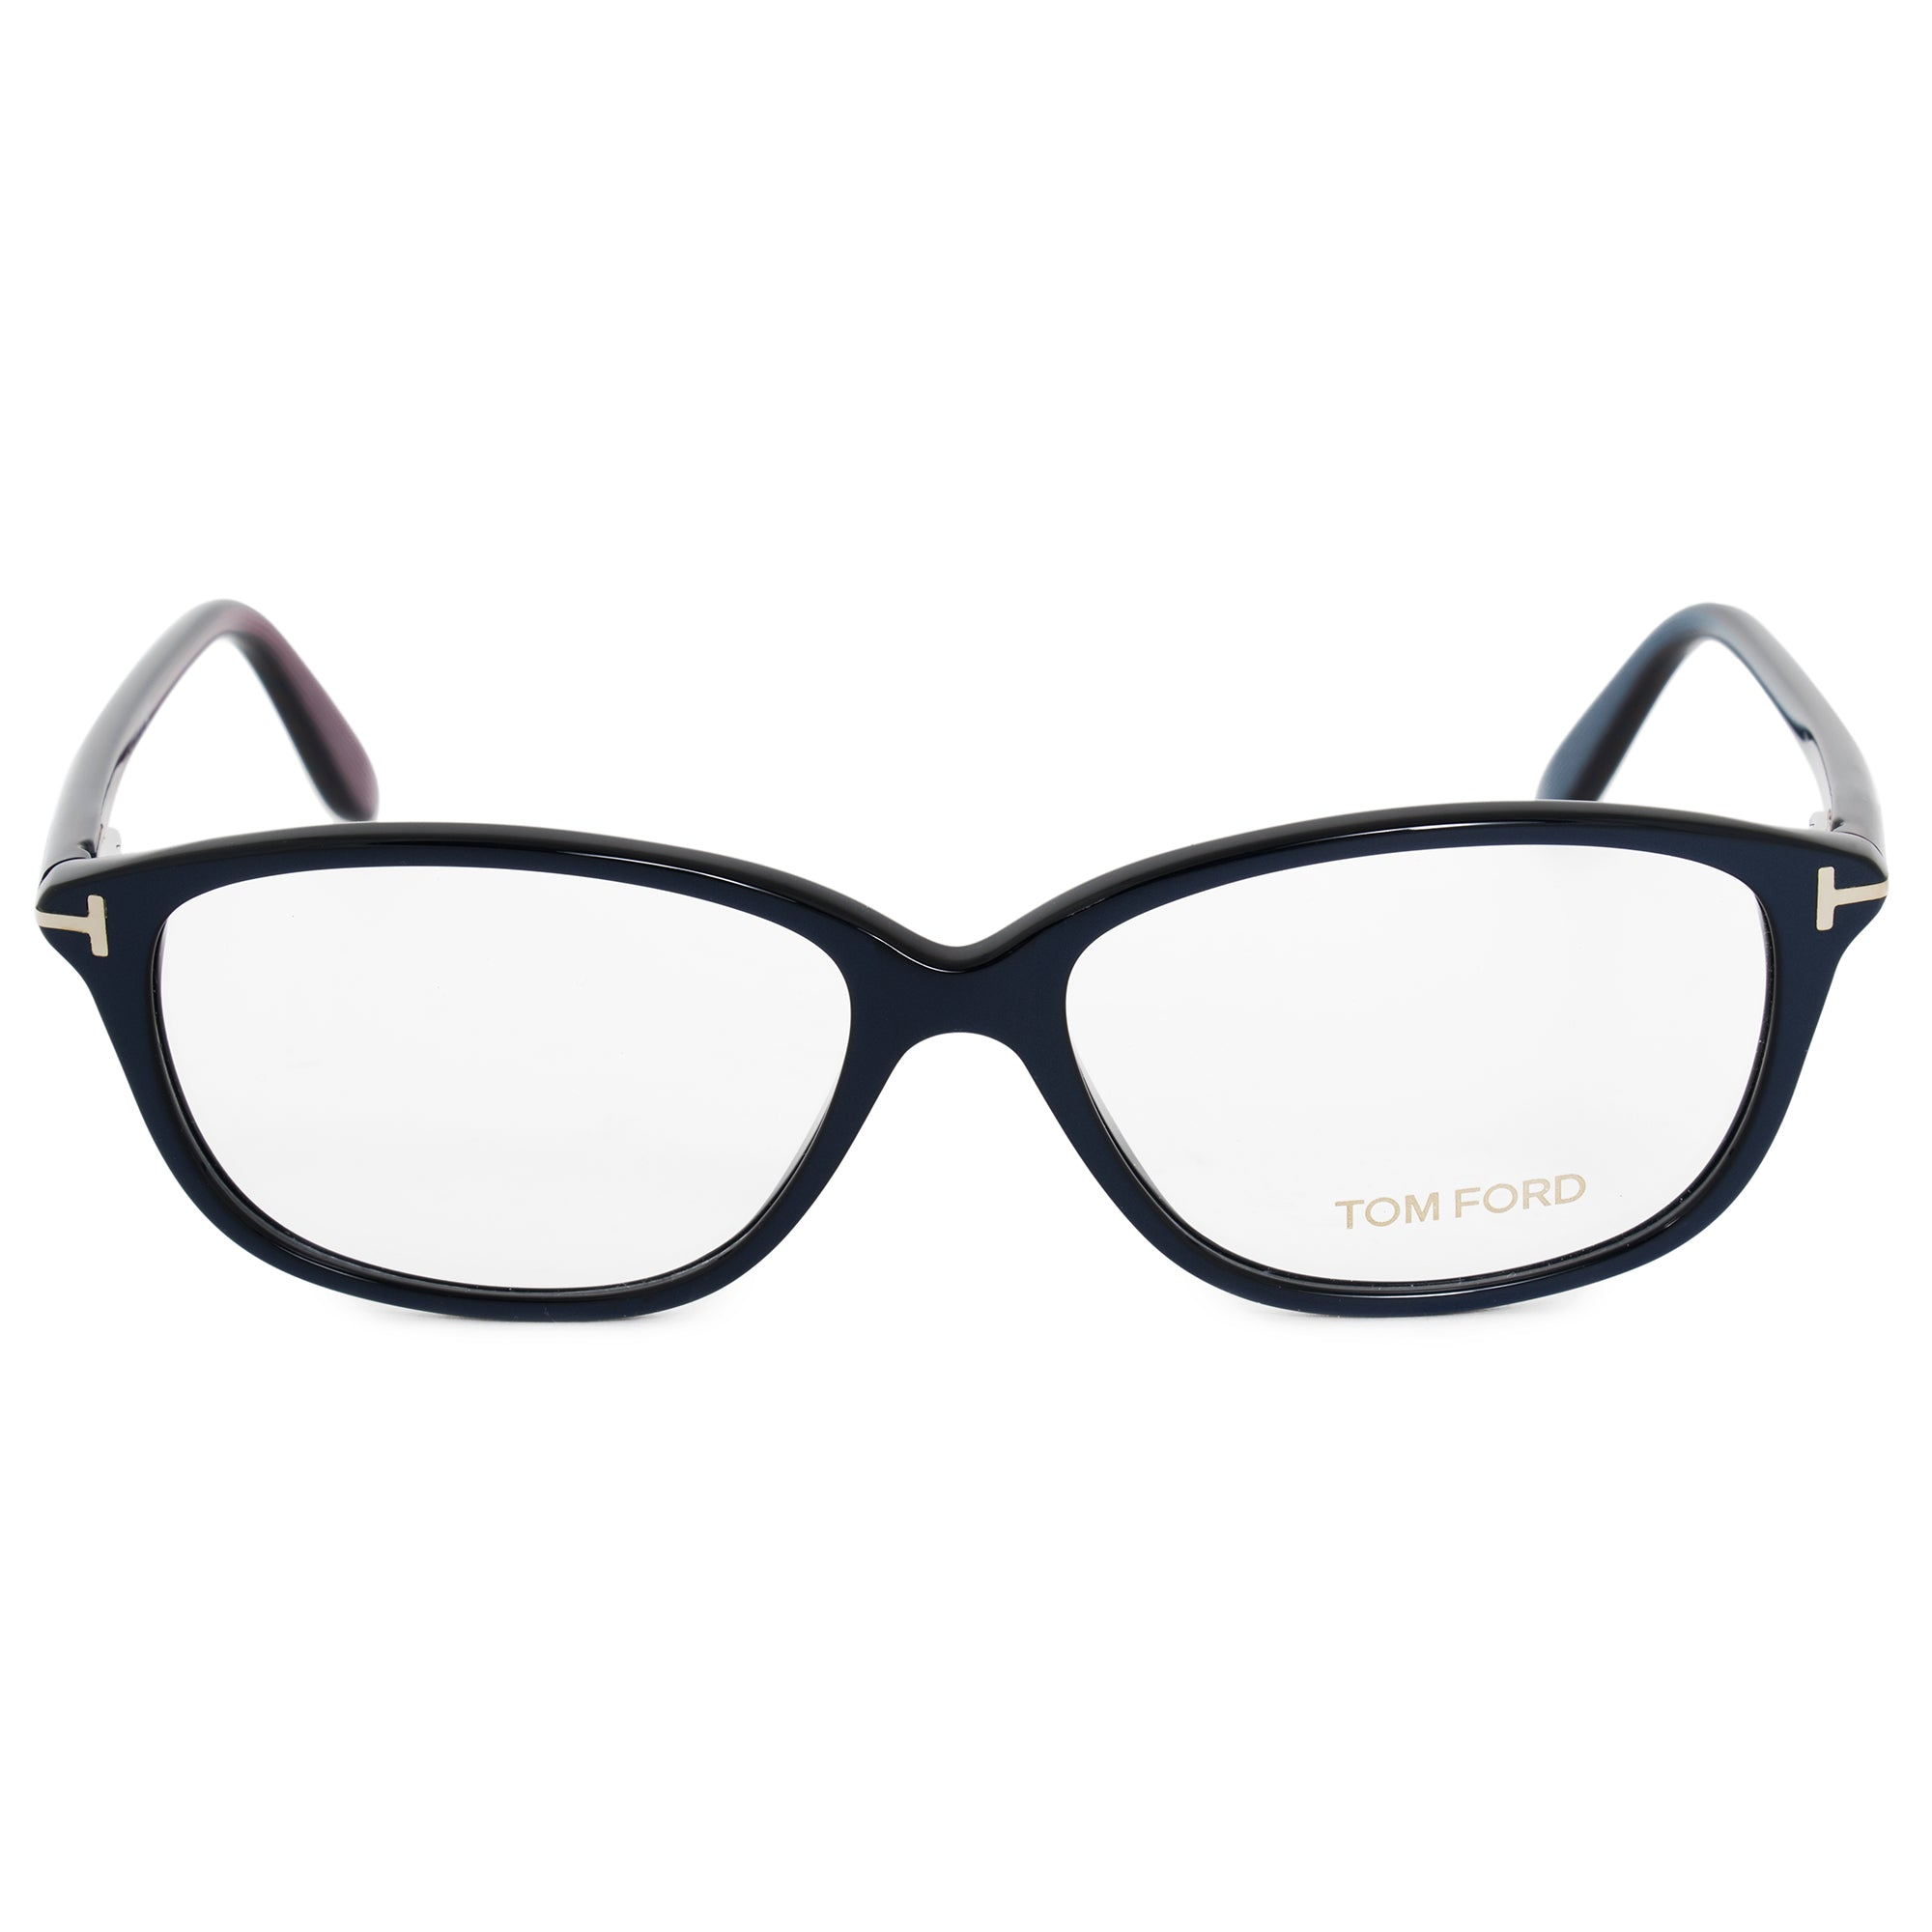 Tom Ford FT5316 Square | Dark Blue | Eyeglass Frame